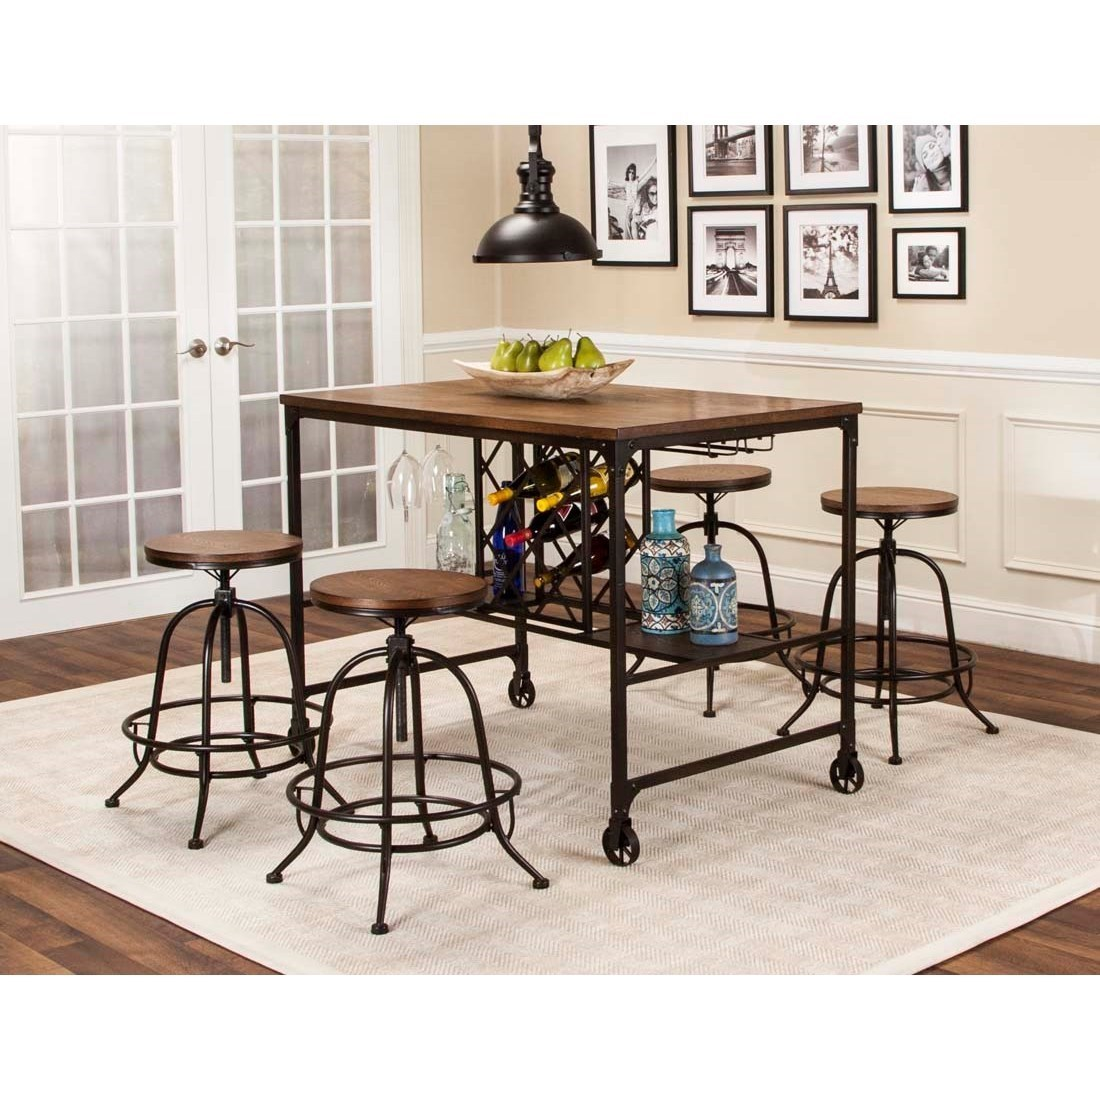 Cramco Inc Craft 5 Piece Counter Height Storage Table and Swivel Stool Dining Set  sc 1 st  Royal Furniture & Cramco Inc Craft 5 Piece Counter Height Storage Table and Swivel ...